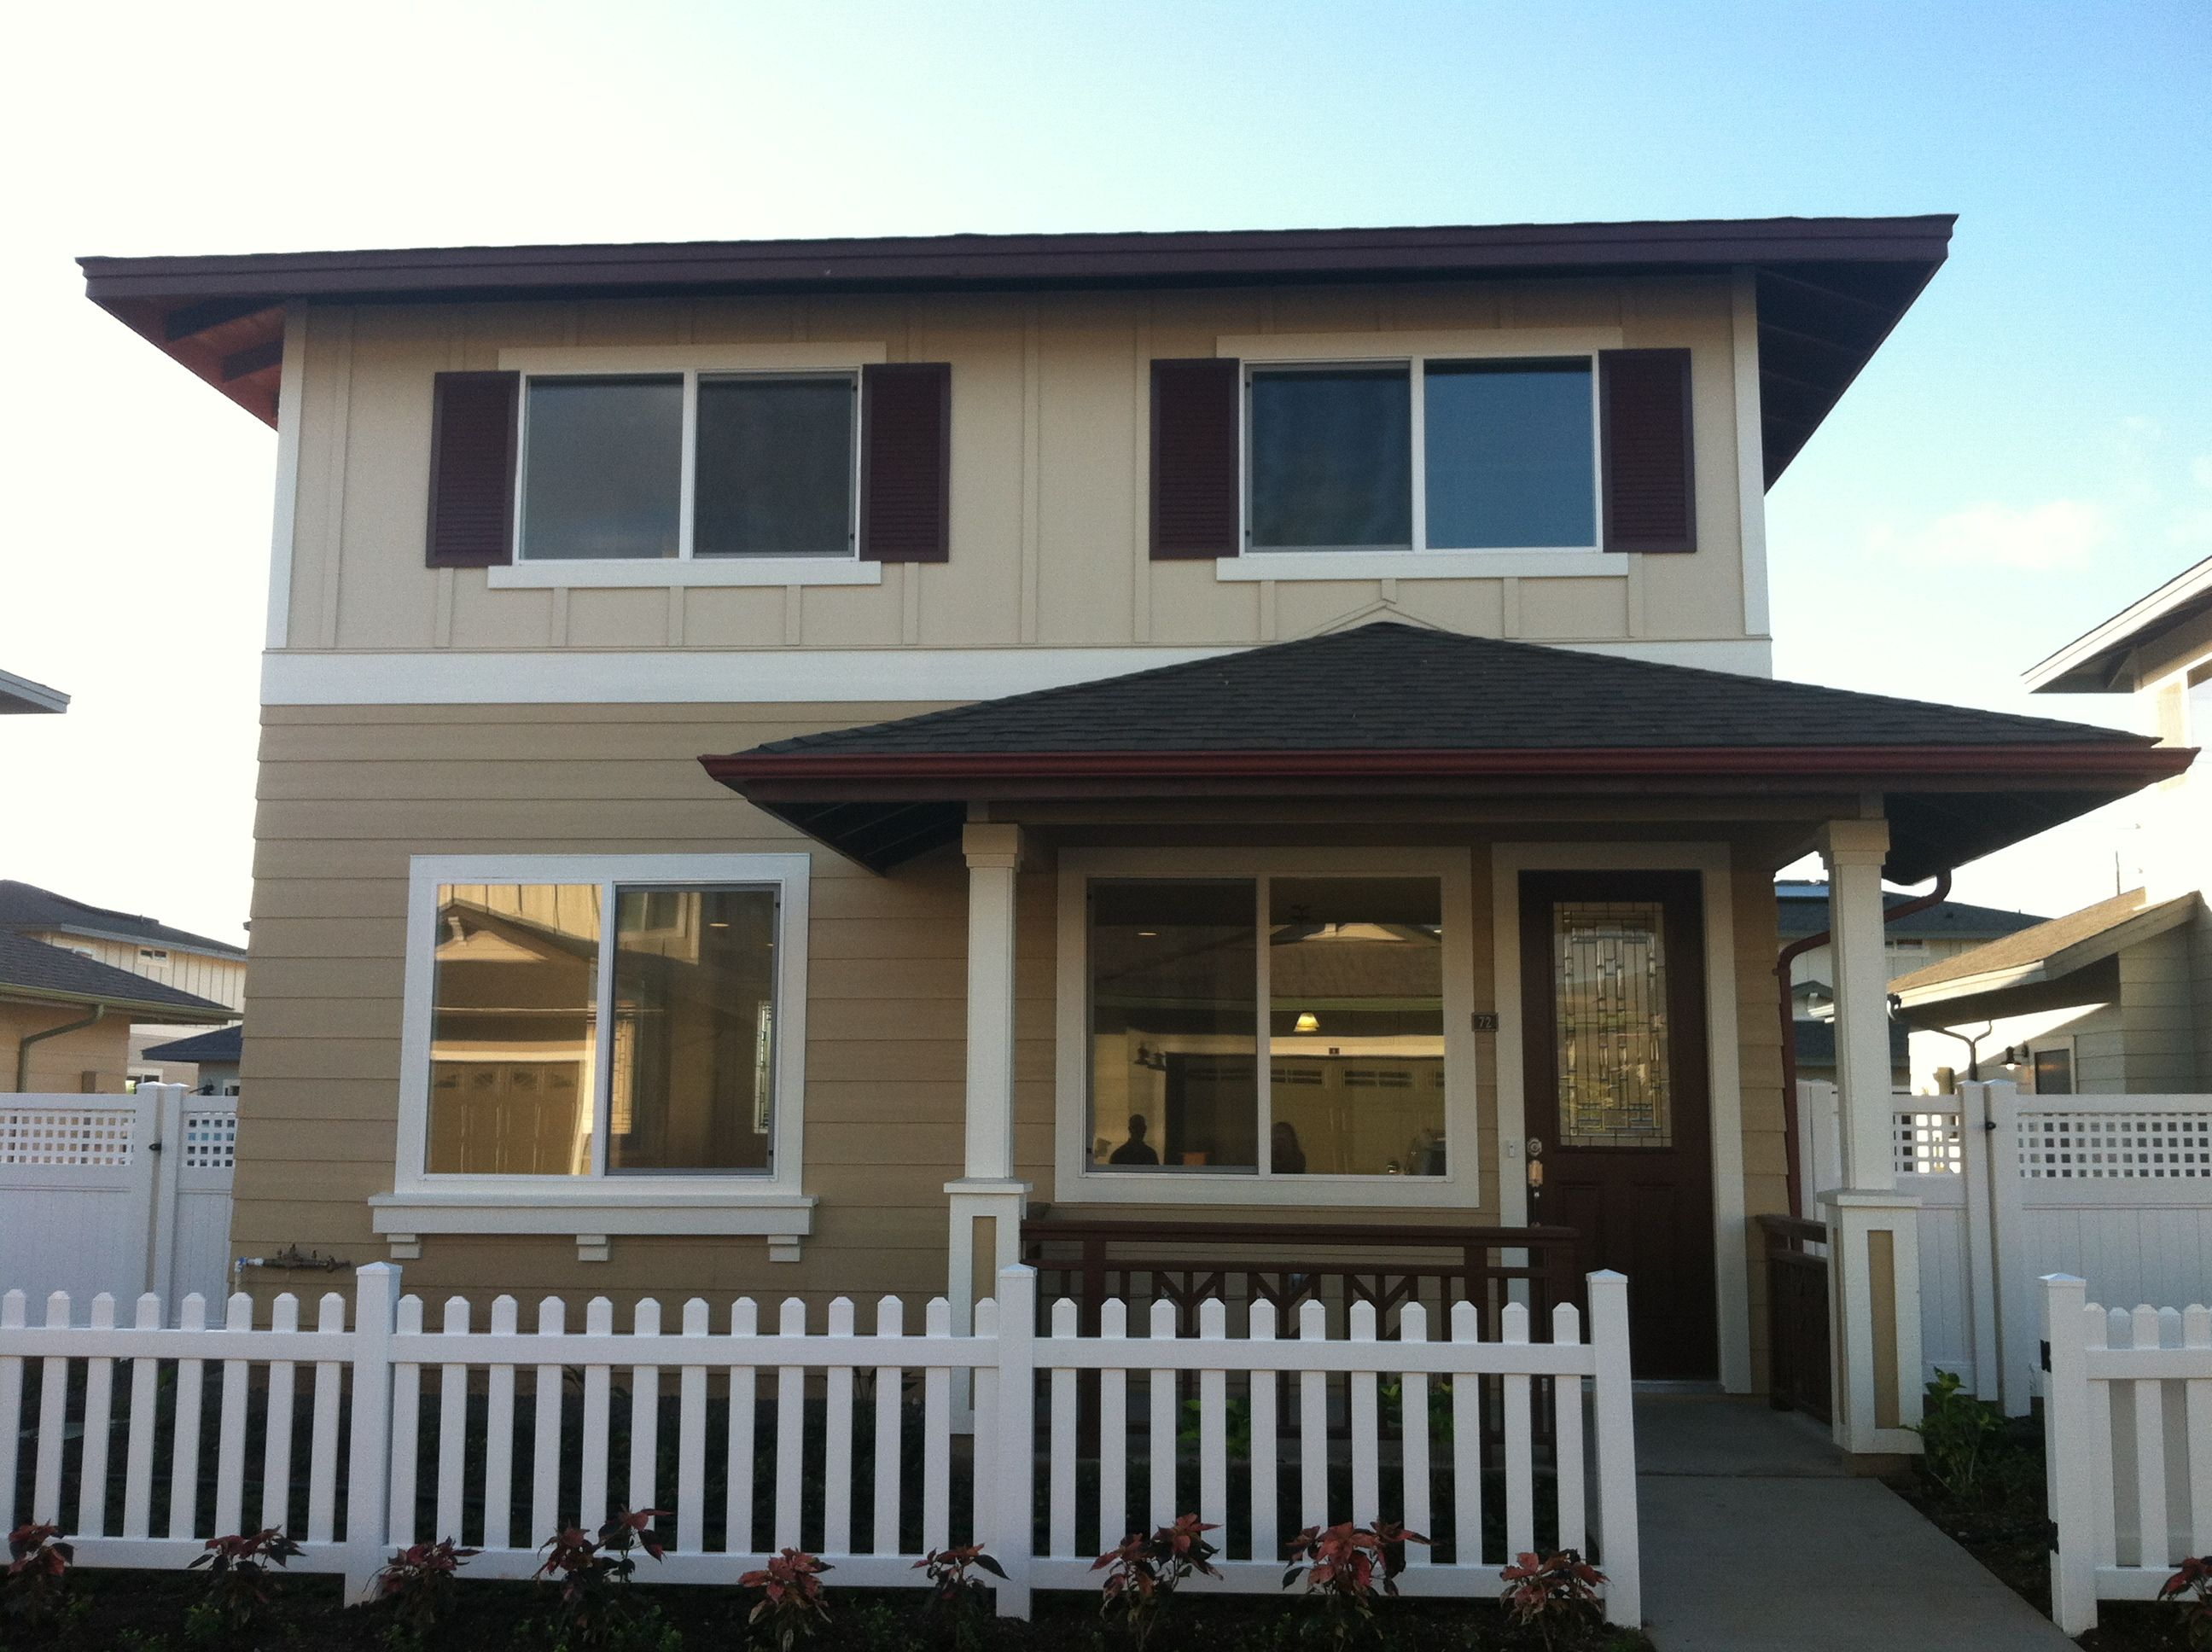 1101 Kukulu St 72 A Must See! 3 bedroom home located in